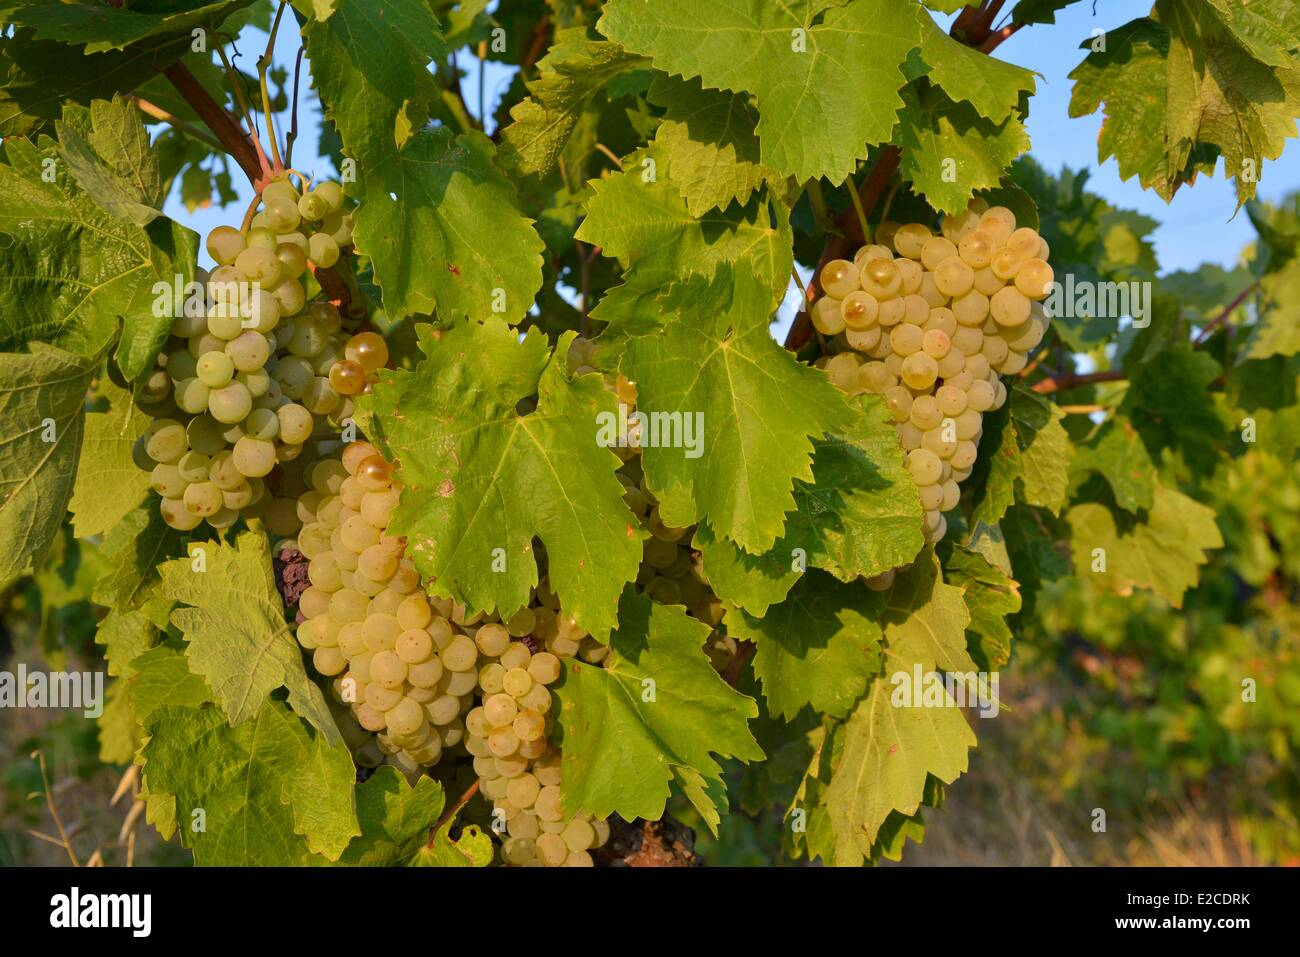 France, Herault, Boujan sur Libron, vineyards of the Domain of the Ancienne Cordonnerie, bunches of grapes cultivated - Stock Image